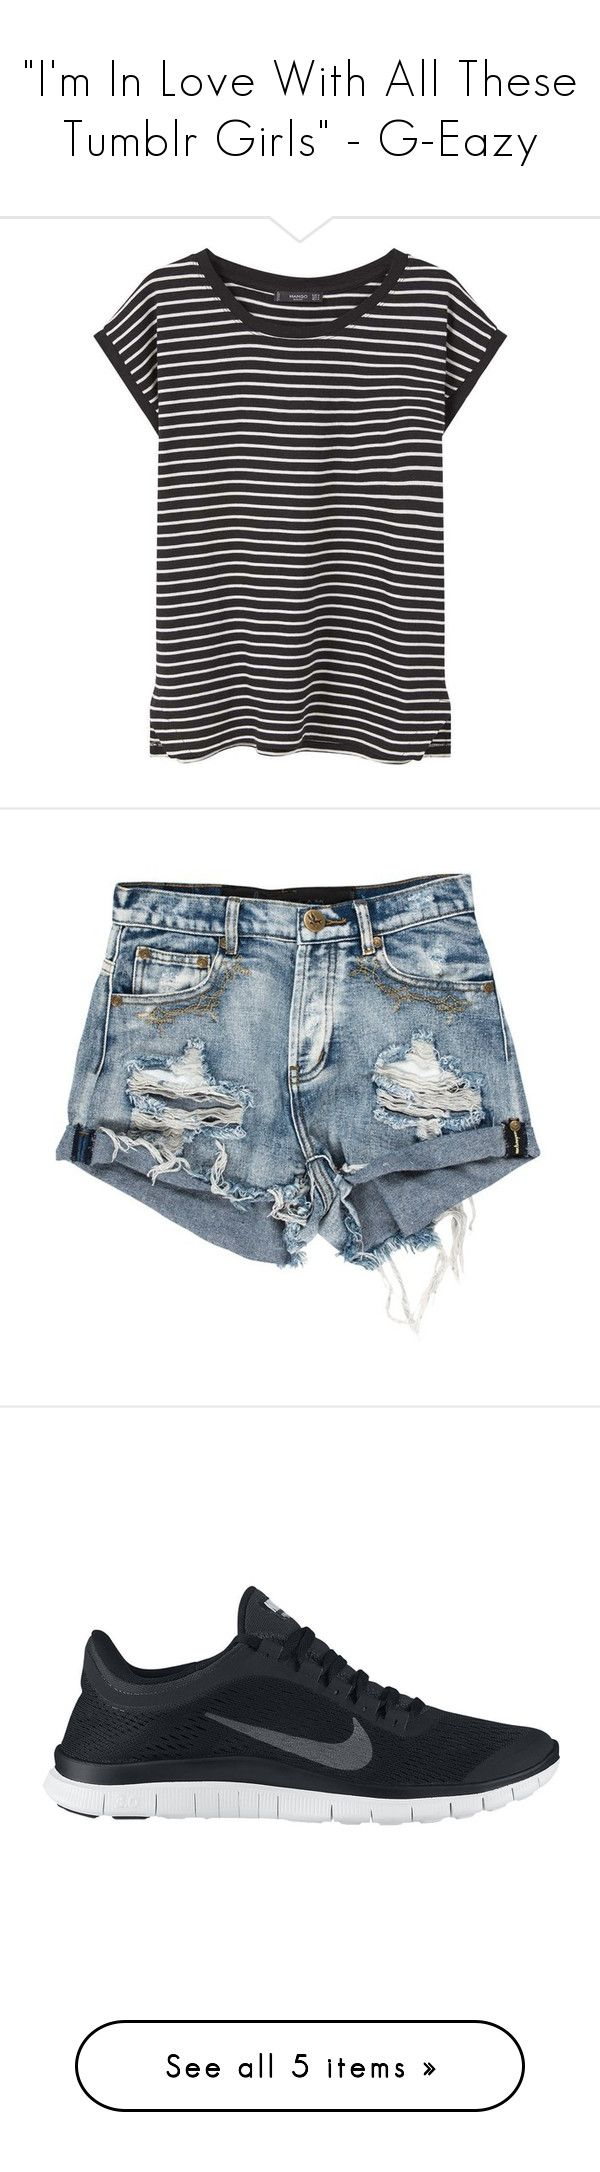 """""""""""I'm In Love With All These Tumblr Girls"""" - G-Eazy"""" by meredith-gomes ❤ liked on Polyvore featuring shorts, sneakers, Tshirt, tops, t-shirts, shirts, blusas, tees, side slit shirt and stripe tee"""